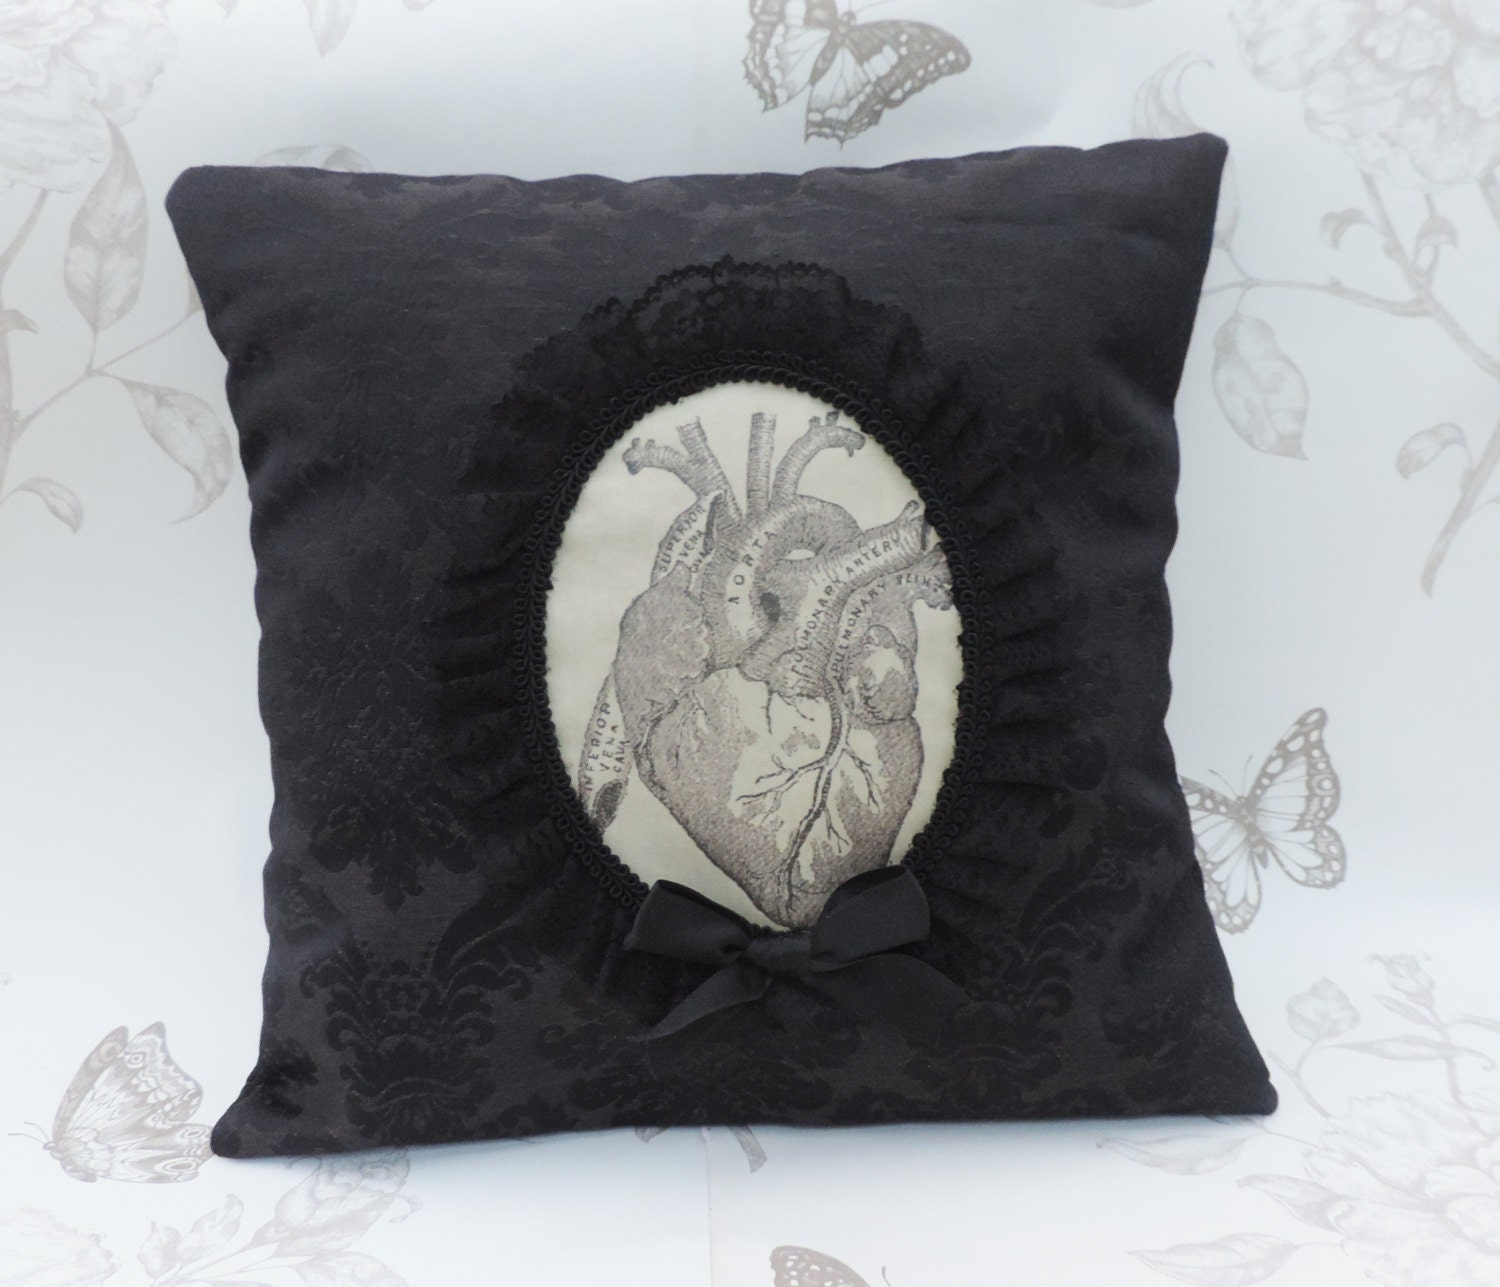 Victorian Heart Throw Pillows : Gothic anatomic heart cameo throw pillow gothic home decor